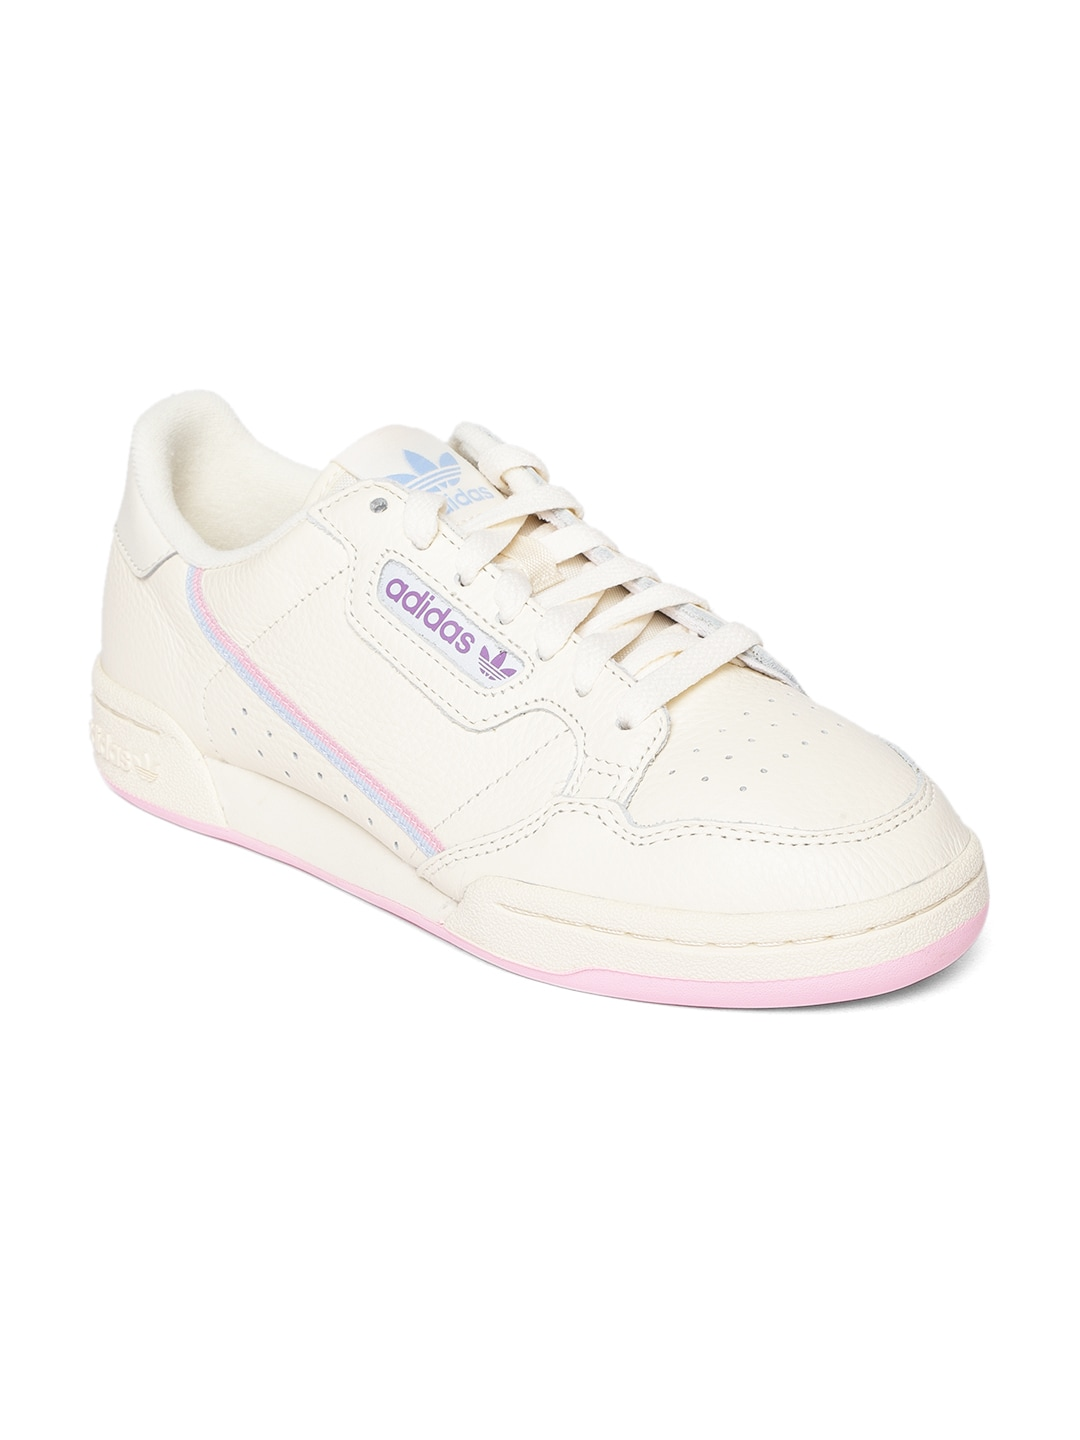 0d6f089cb2cb58 Adidas For Women Shoes - Buy Adidas For Women Shoes online in India